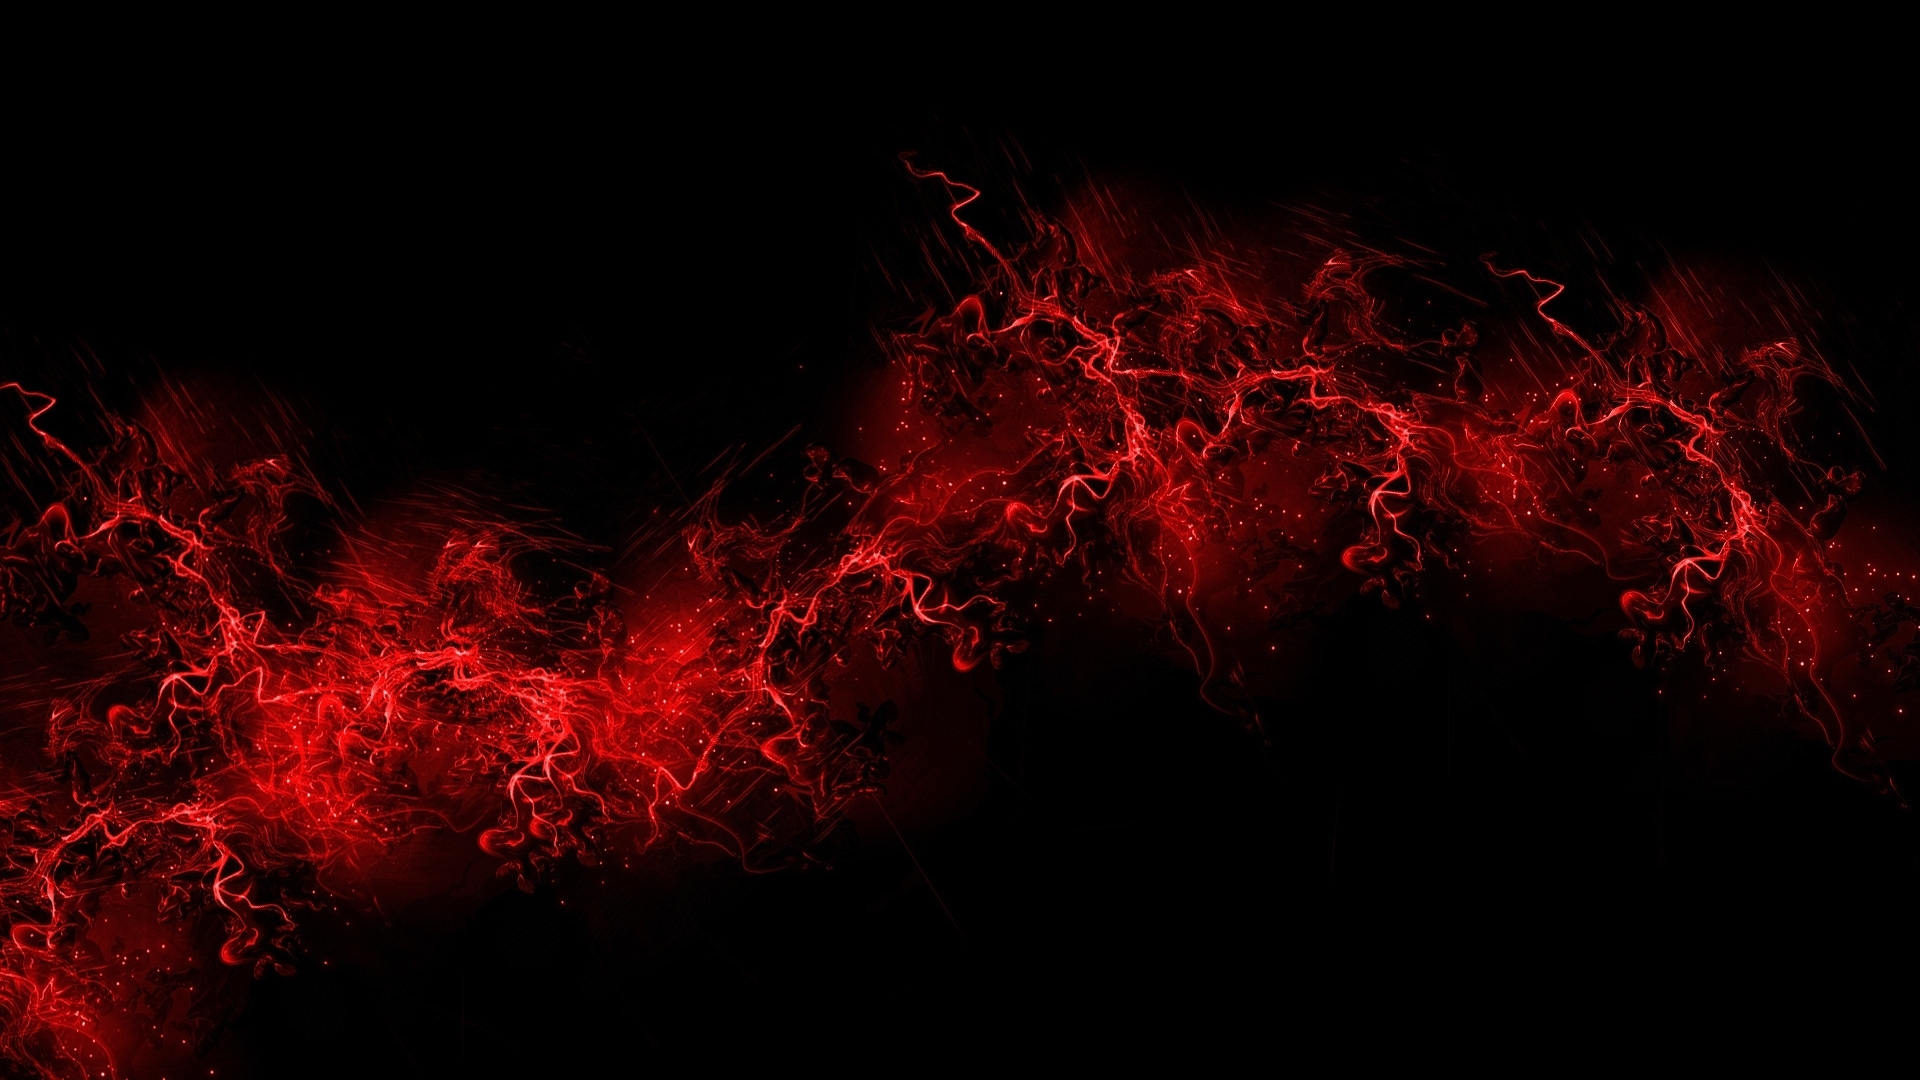 10 New Red Black Abstract Wallpaper FULL HD 1920×1080 For PC Background